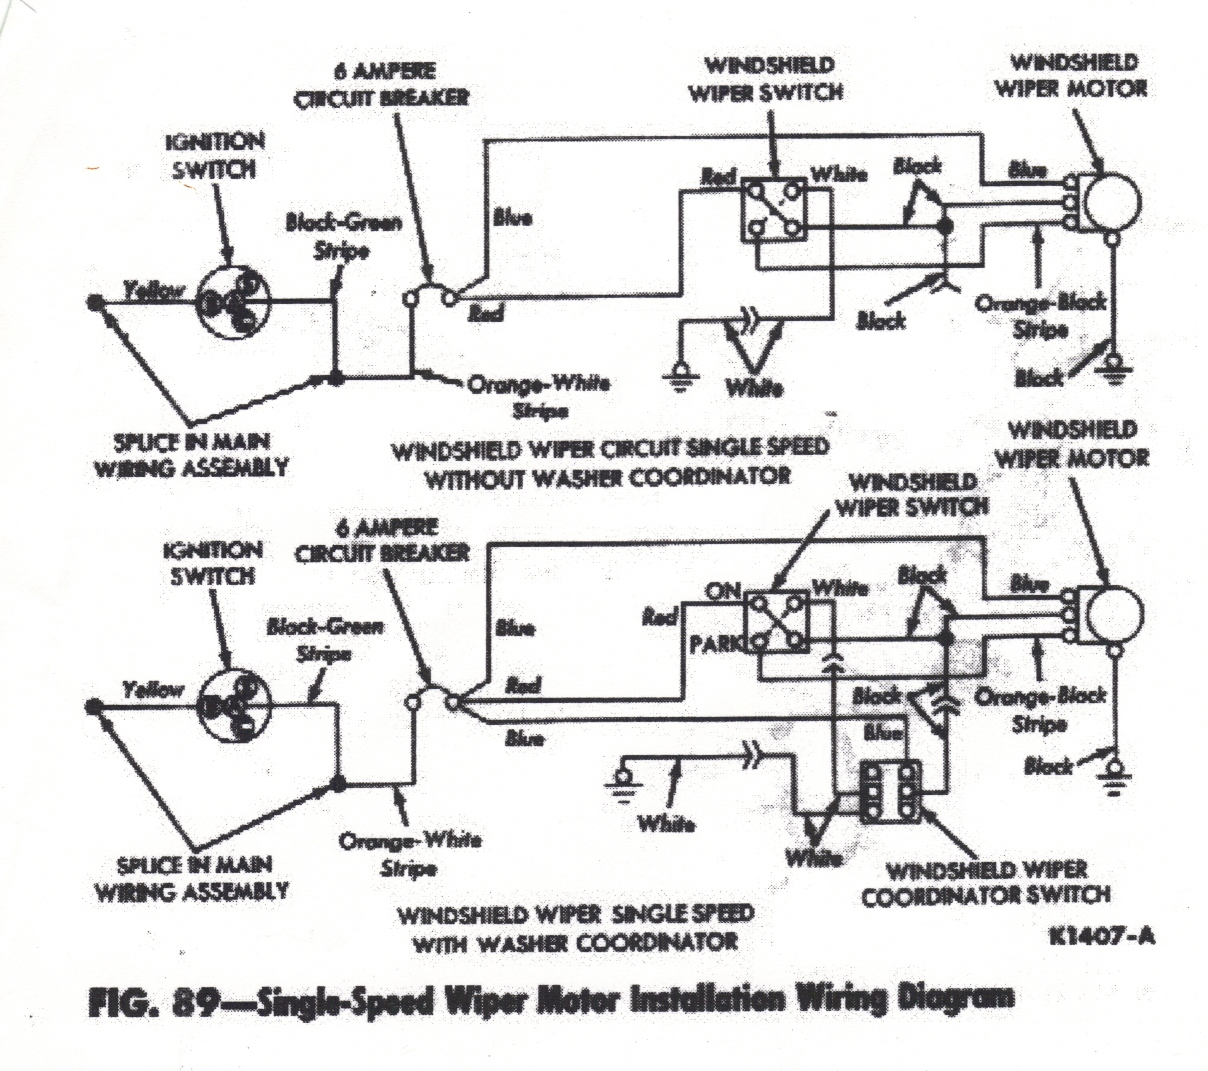 Wiper Switch Wiring Diagram Library 5 Way Hhh Wipers Drawing A